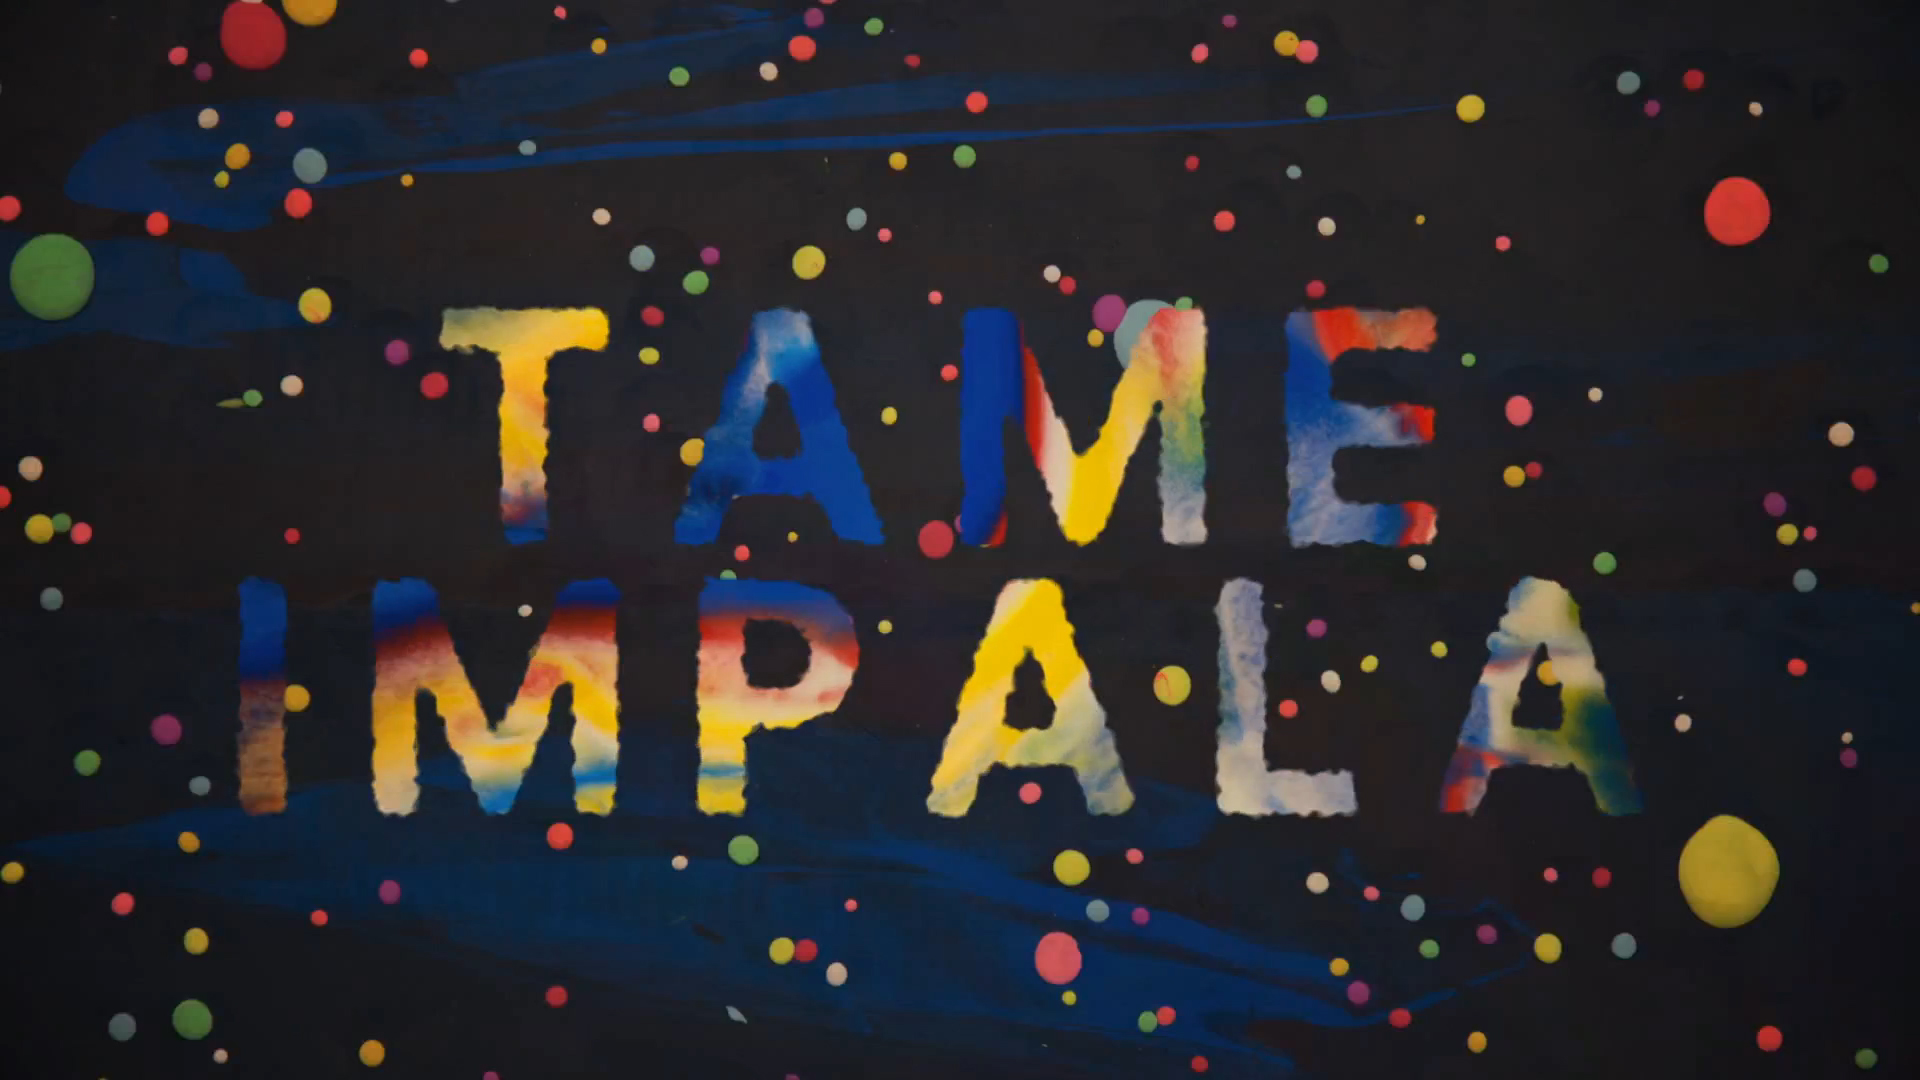 Feels Like We Only Go Backwards Tame Impala The Superslice